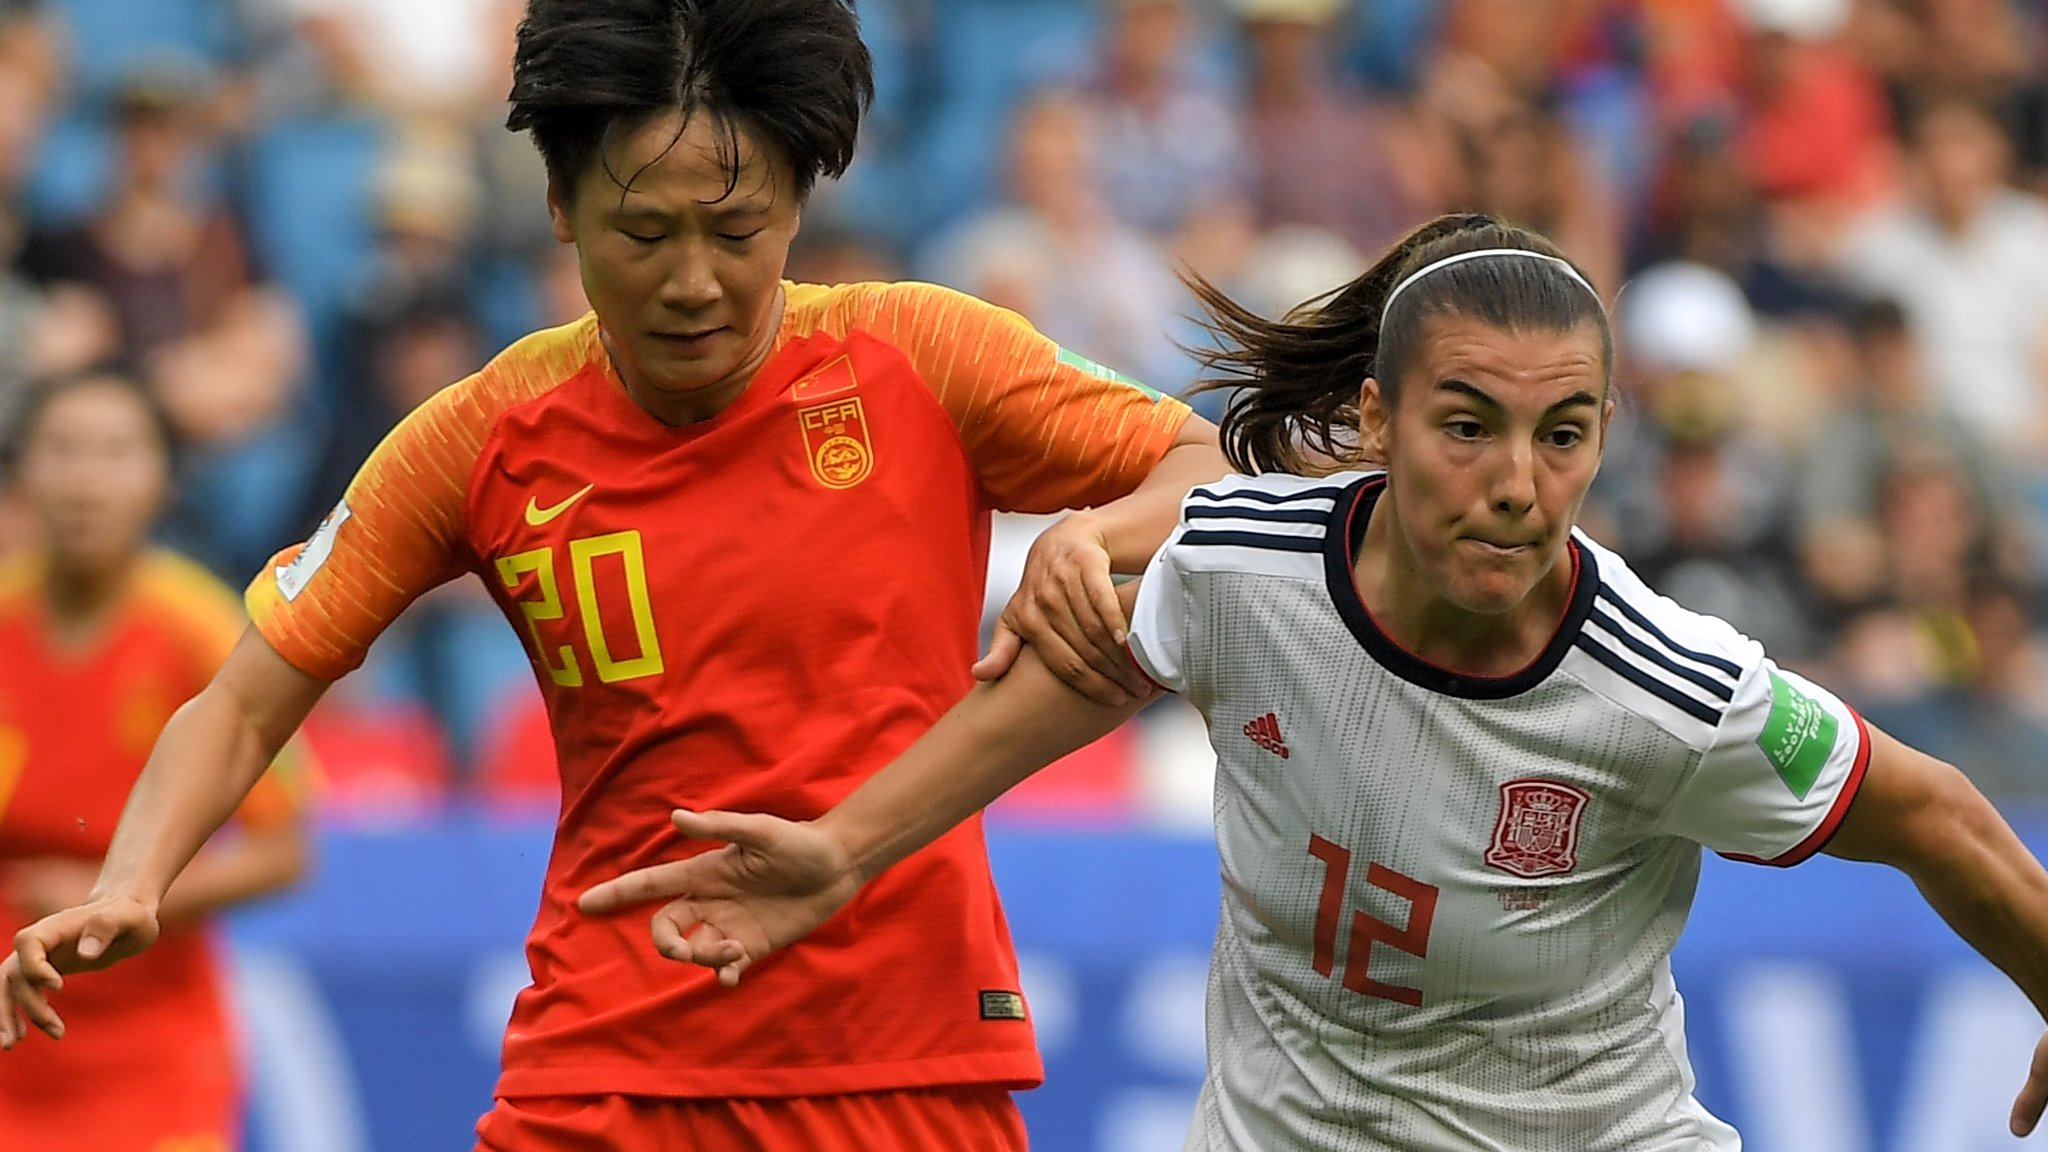 Women's World Cup: Spain and China reach last 16 after 0-0 stalemate